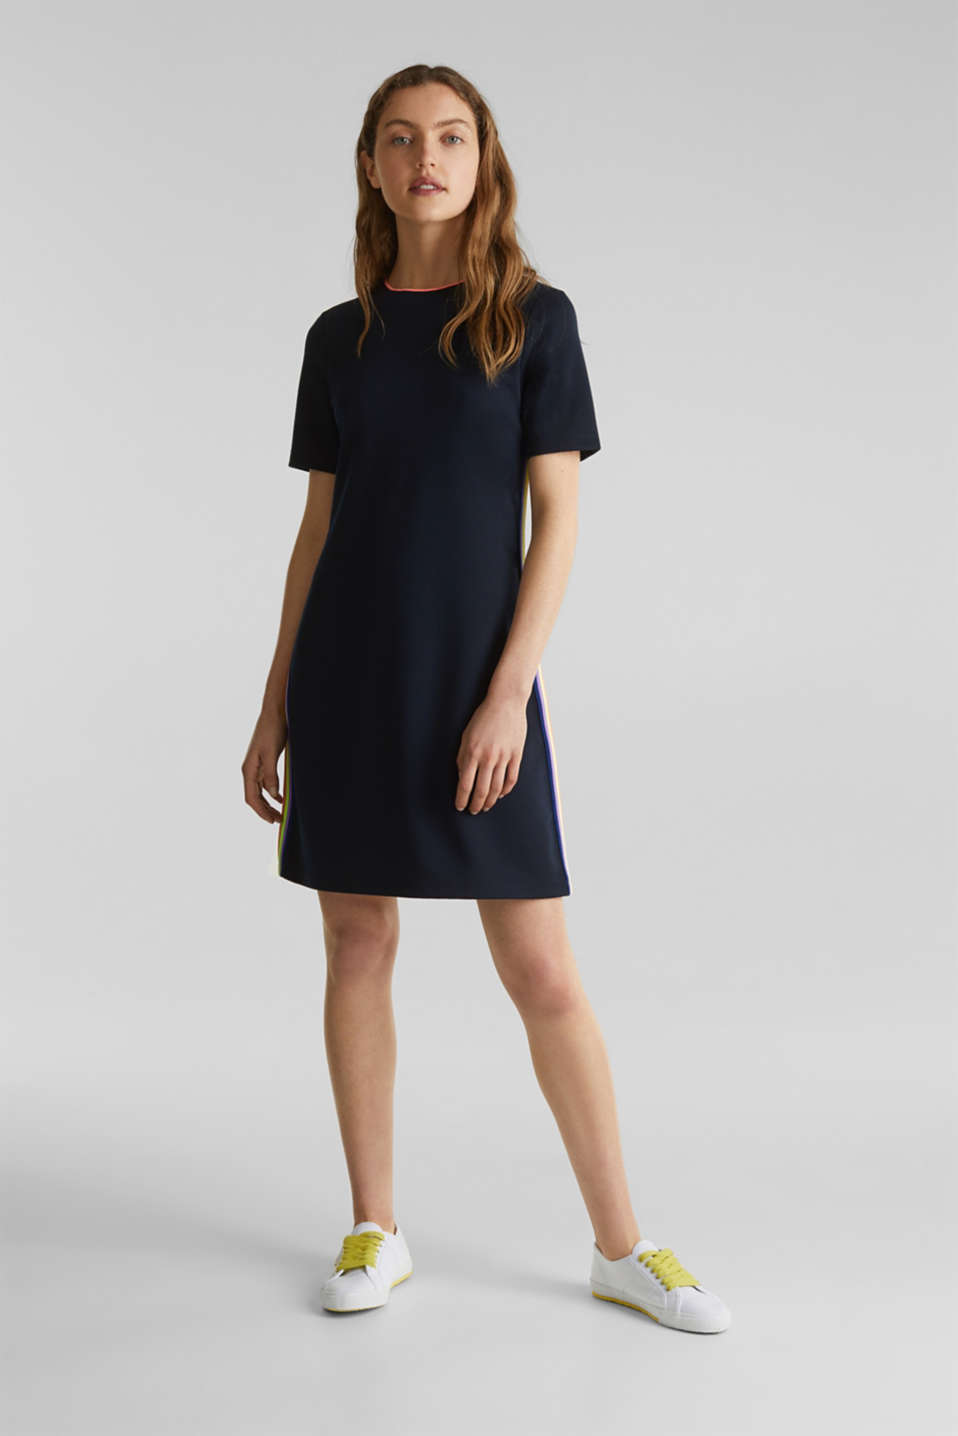 Stretch jersey dress with striped details, NAVY, detail image number 1